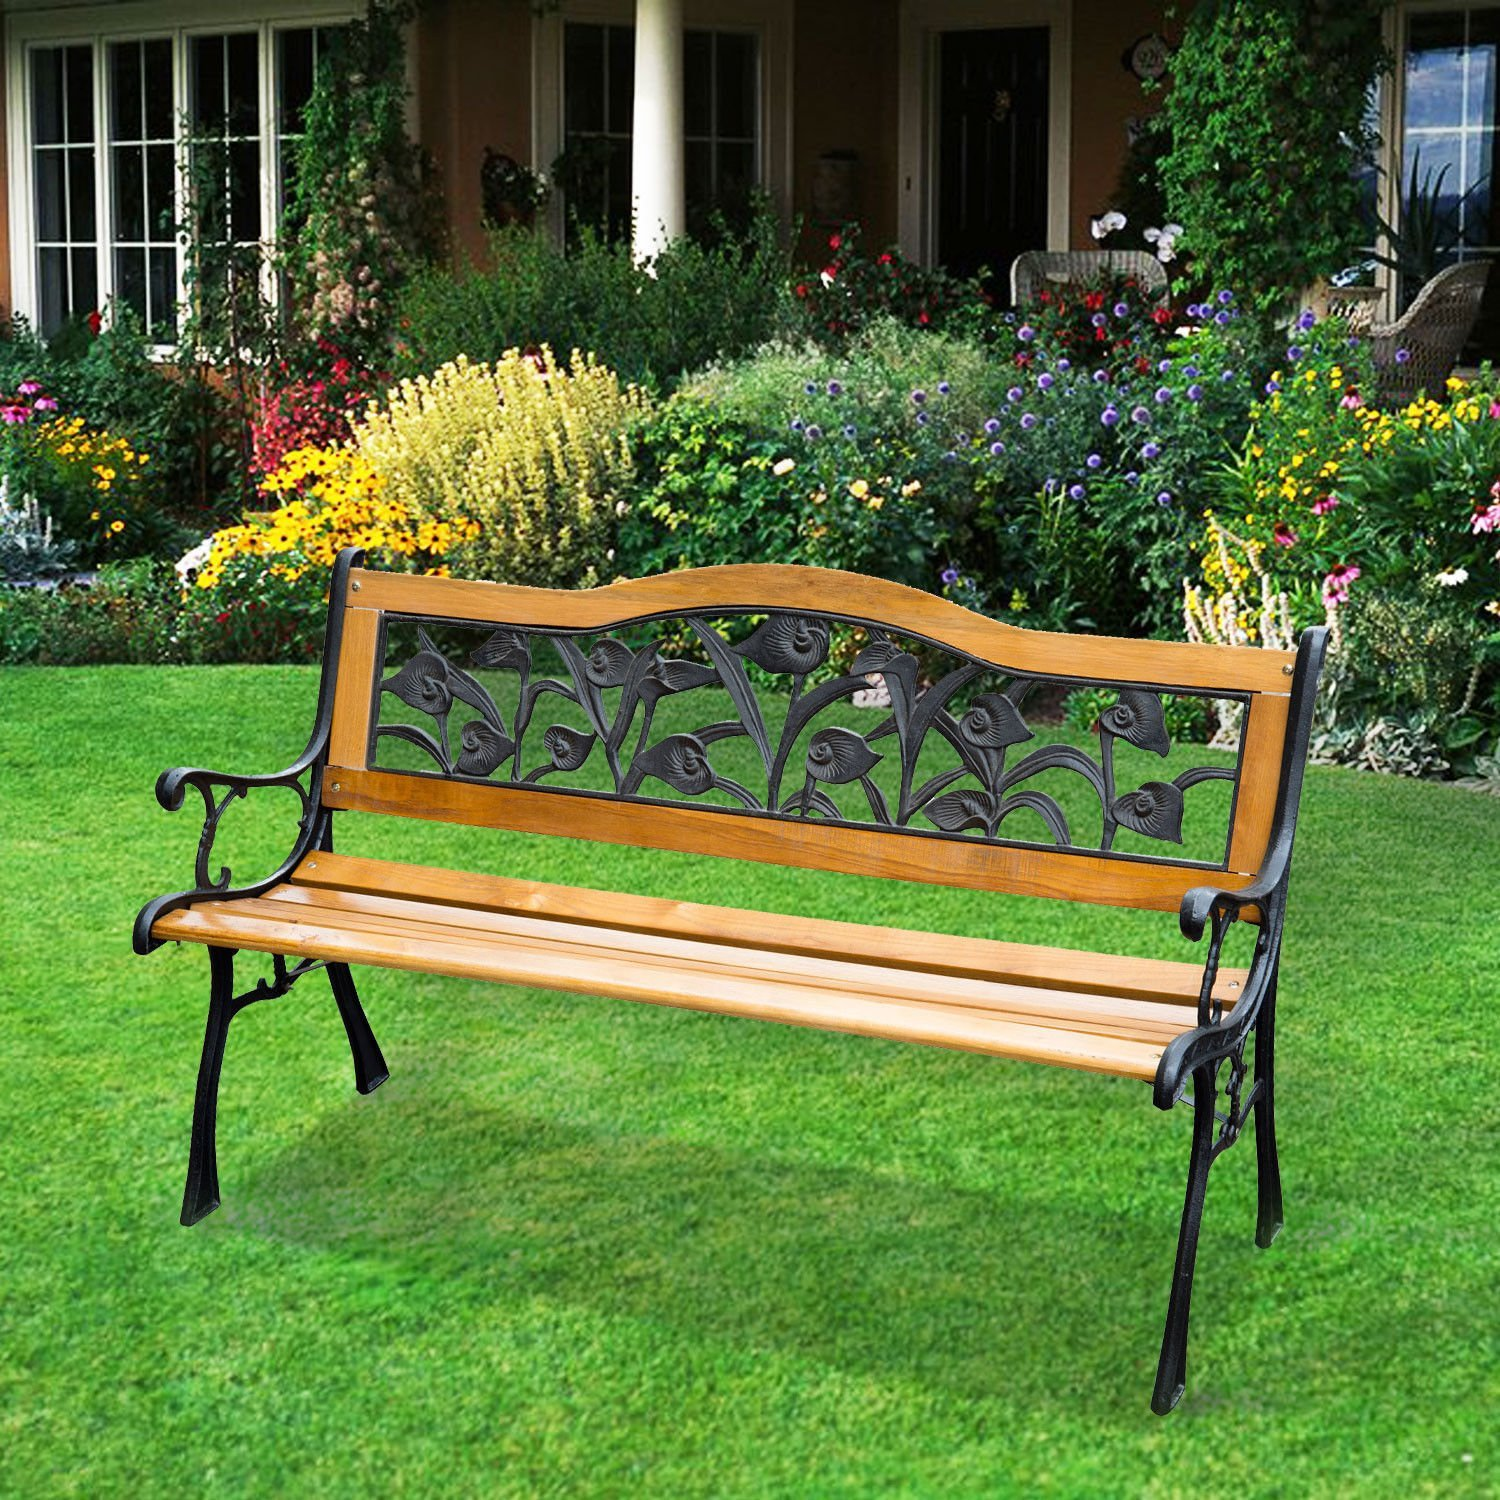 benches storage pads wrought outdoor full garden size lawn plans ebay cedar wood photo corneroor seat seats regency bench iron wooden design and patio amazing